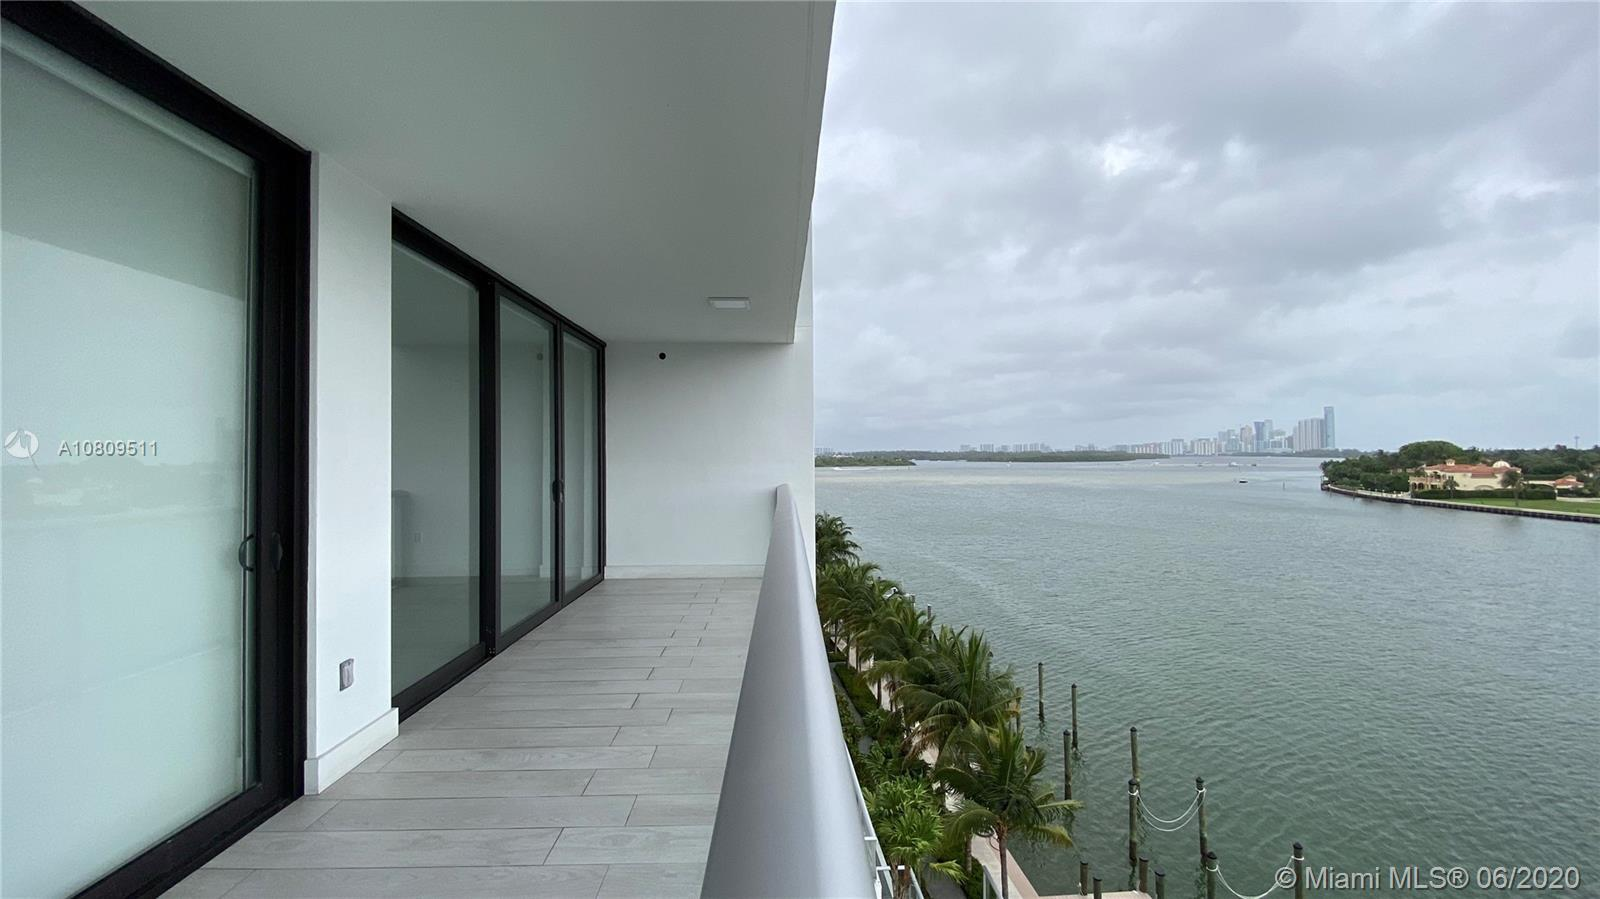 Amazing 1 Plus DEN with 2 complete Bathrooms, incredible Master Suite with modern custom closets and electric windows treatment, Den room is closed with bathroom and closet inside, Boutique Modern Building located in a Island on the bay, just steps from the beach, restaurant and shopping Mall at Bal Harbour, amazing bay views, In & Out Building Boat Dock (Association Restrictions Apply) 2 assigned parking spaces + STORAGE. Porcelanato floors inside and on the balcony. Electric blinds on Living room also.